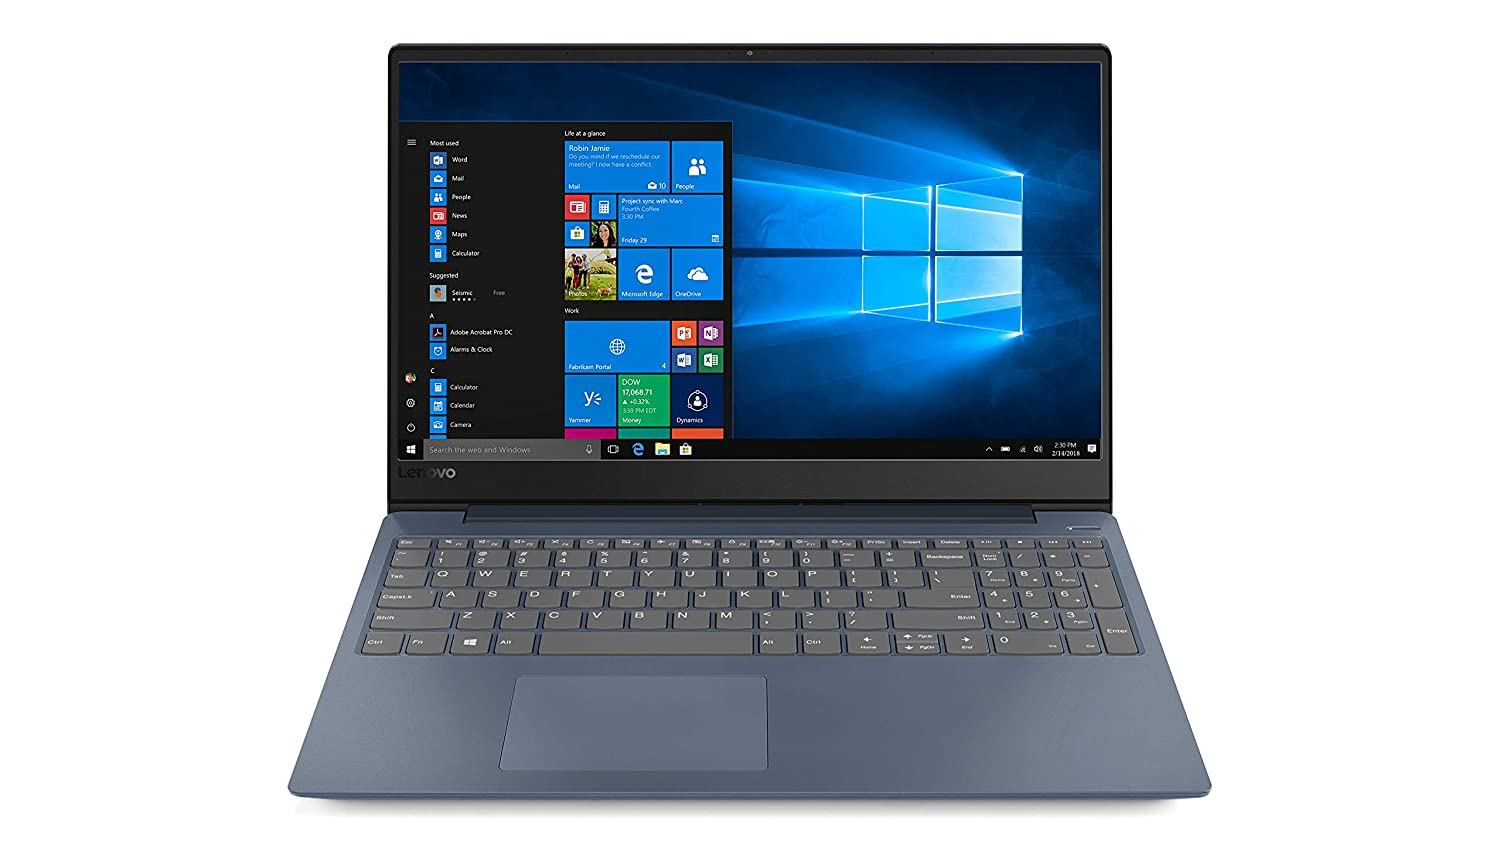 玄関先迄納品 Lenovo (Intel IdeaPad Premium Home and and Business Laptop (Intel 8th Win Gen i5-8250U Quad Core, 4GB RAM, 1TB Sata SSD, 15.6